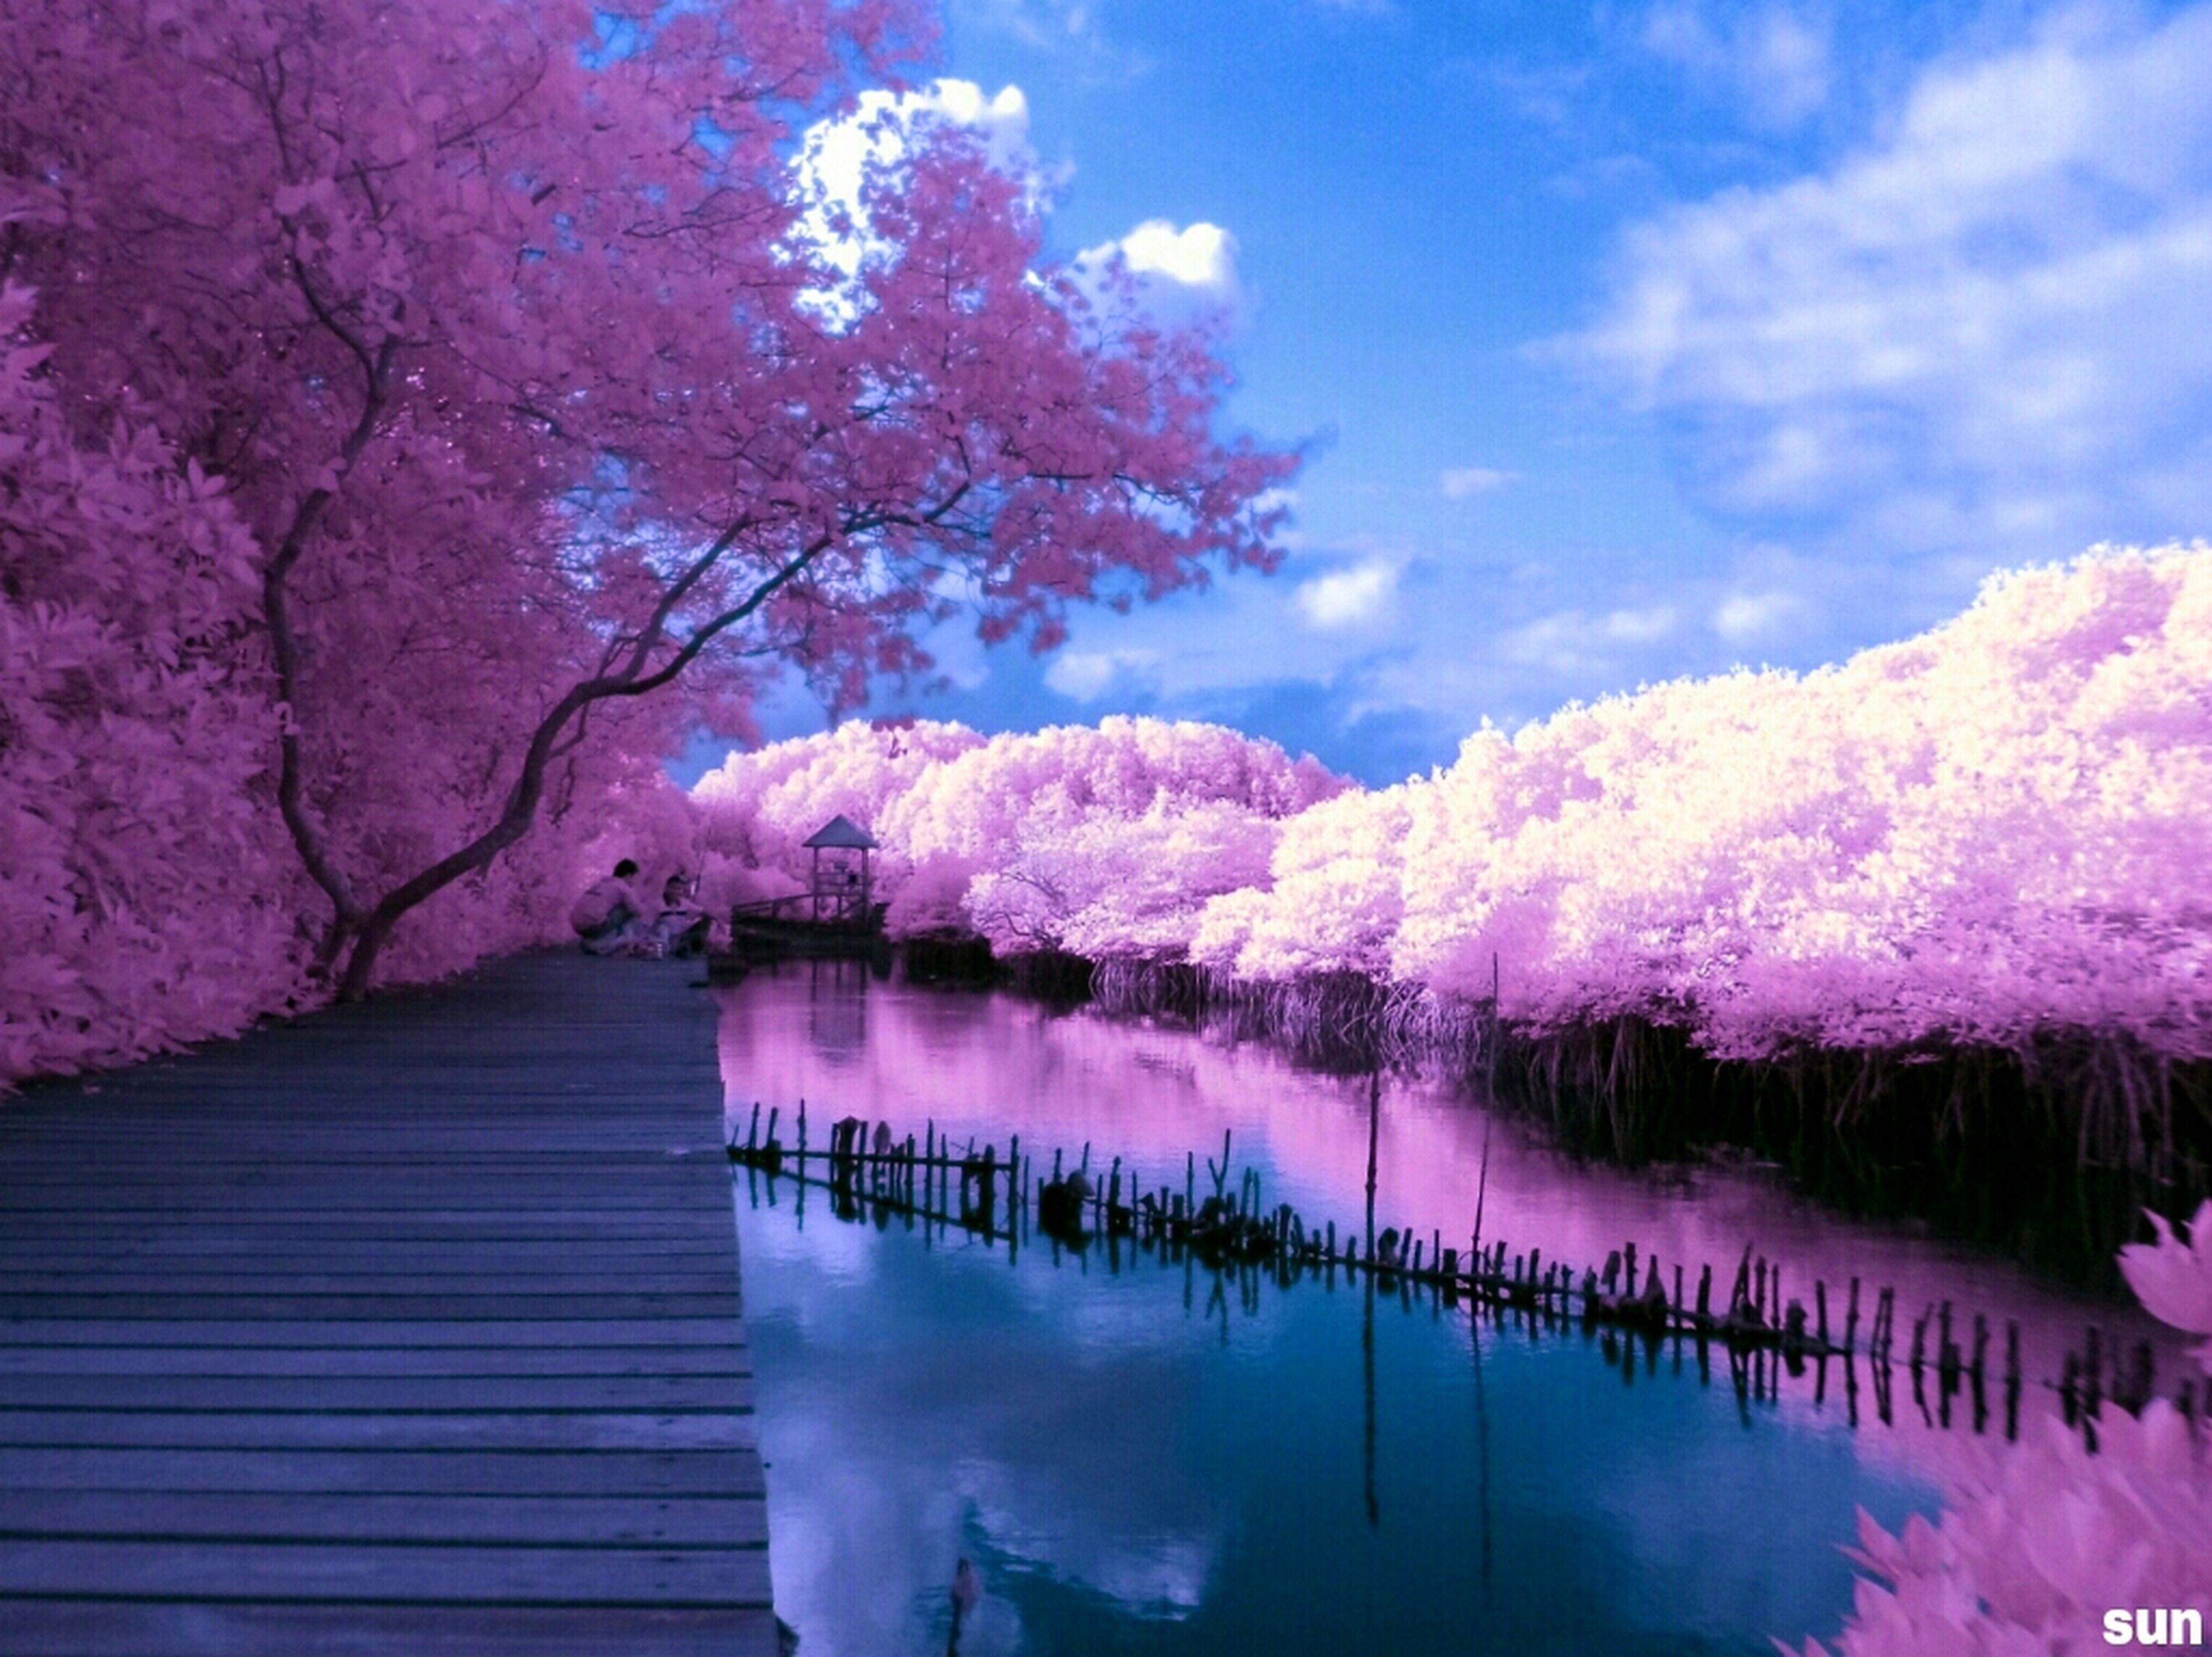 flower, pink color, tree, water, beauty in nature, lake, nature, reflection, branch, purple, tranquility, freshness, growth, pink, tranquil scene, sky, blossom, fragility, scenics, outdoors